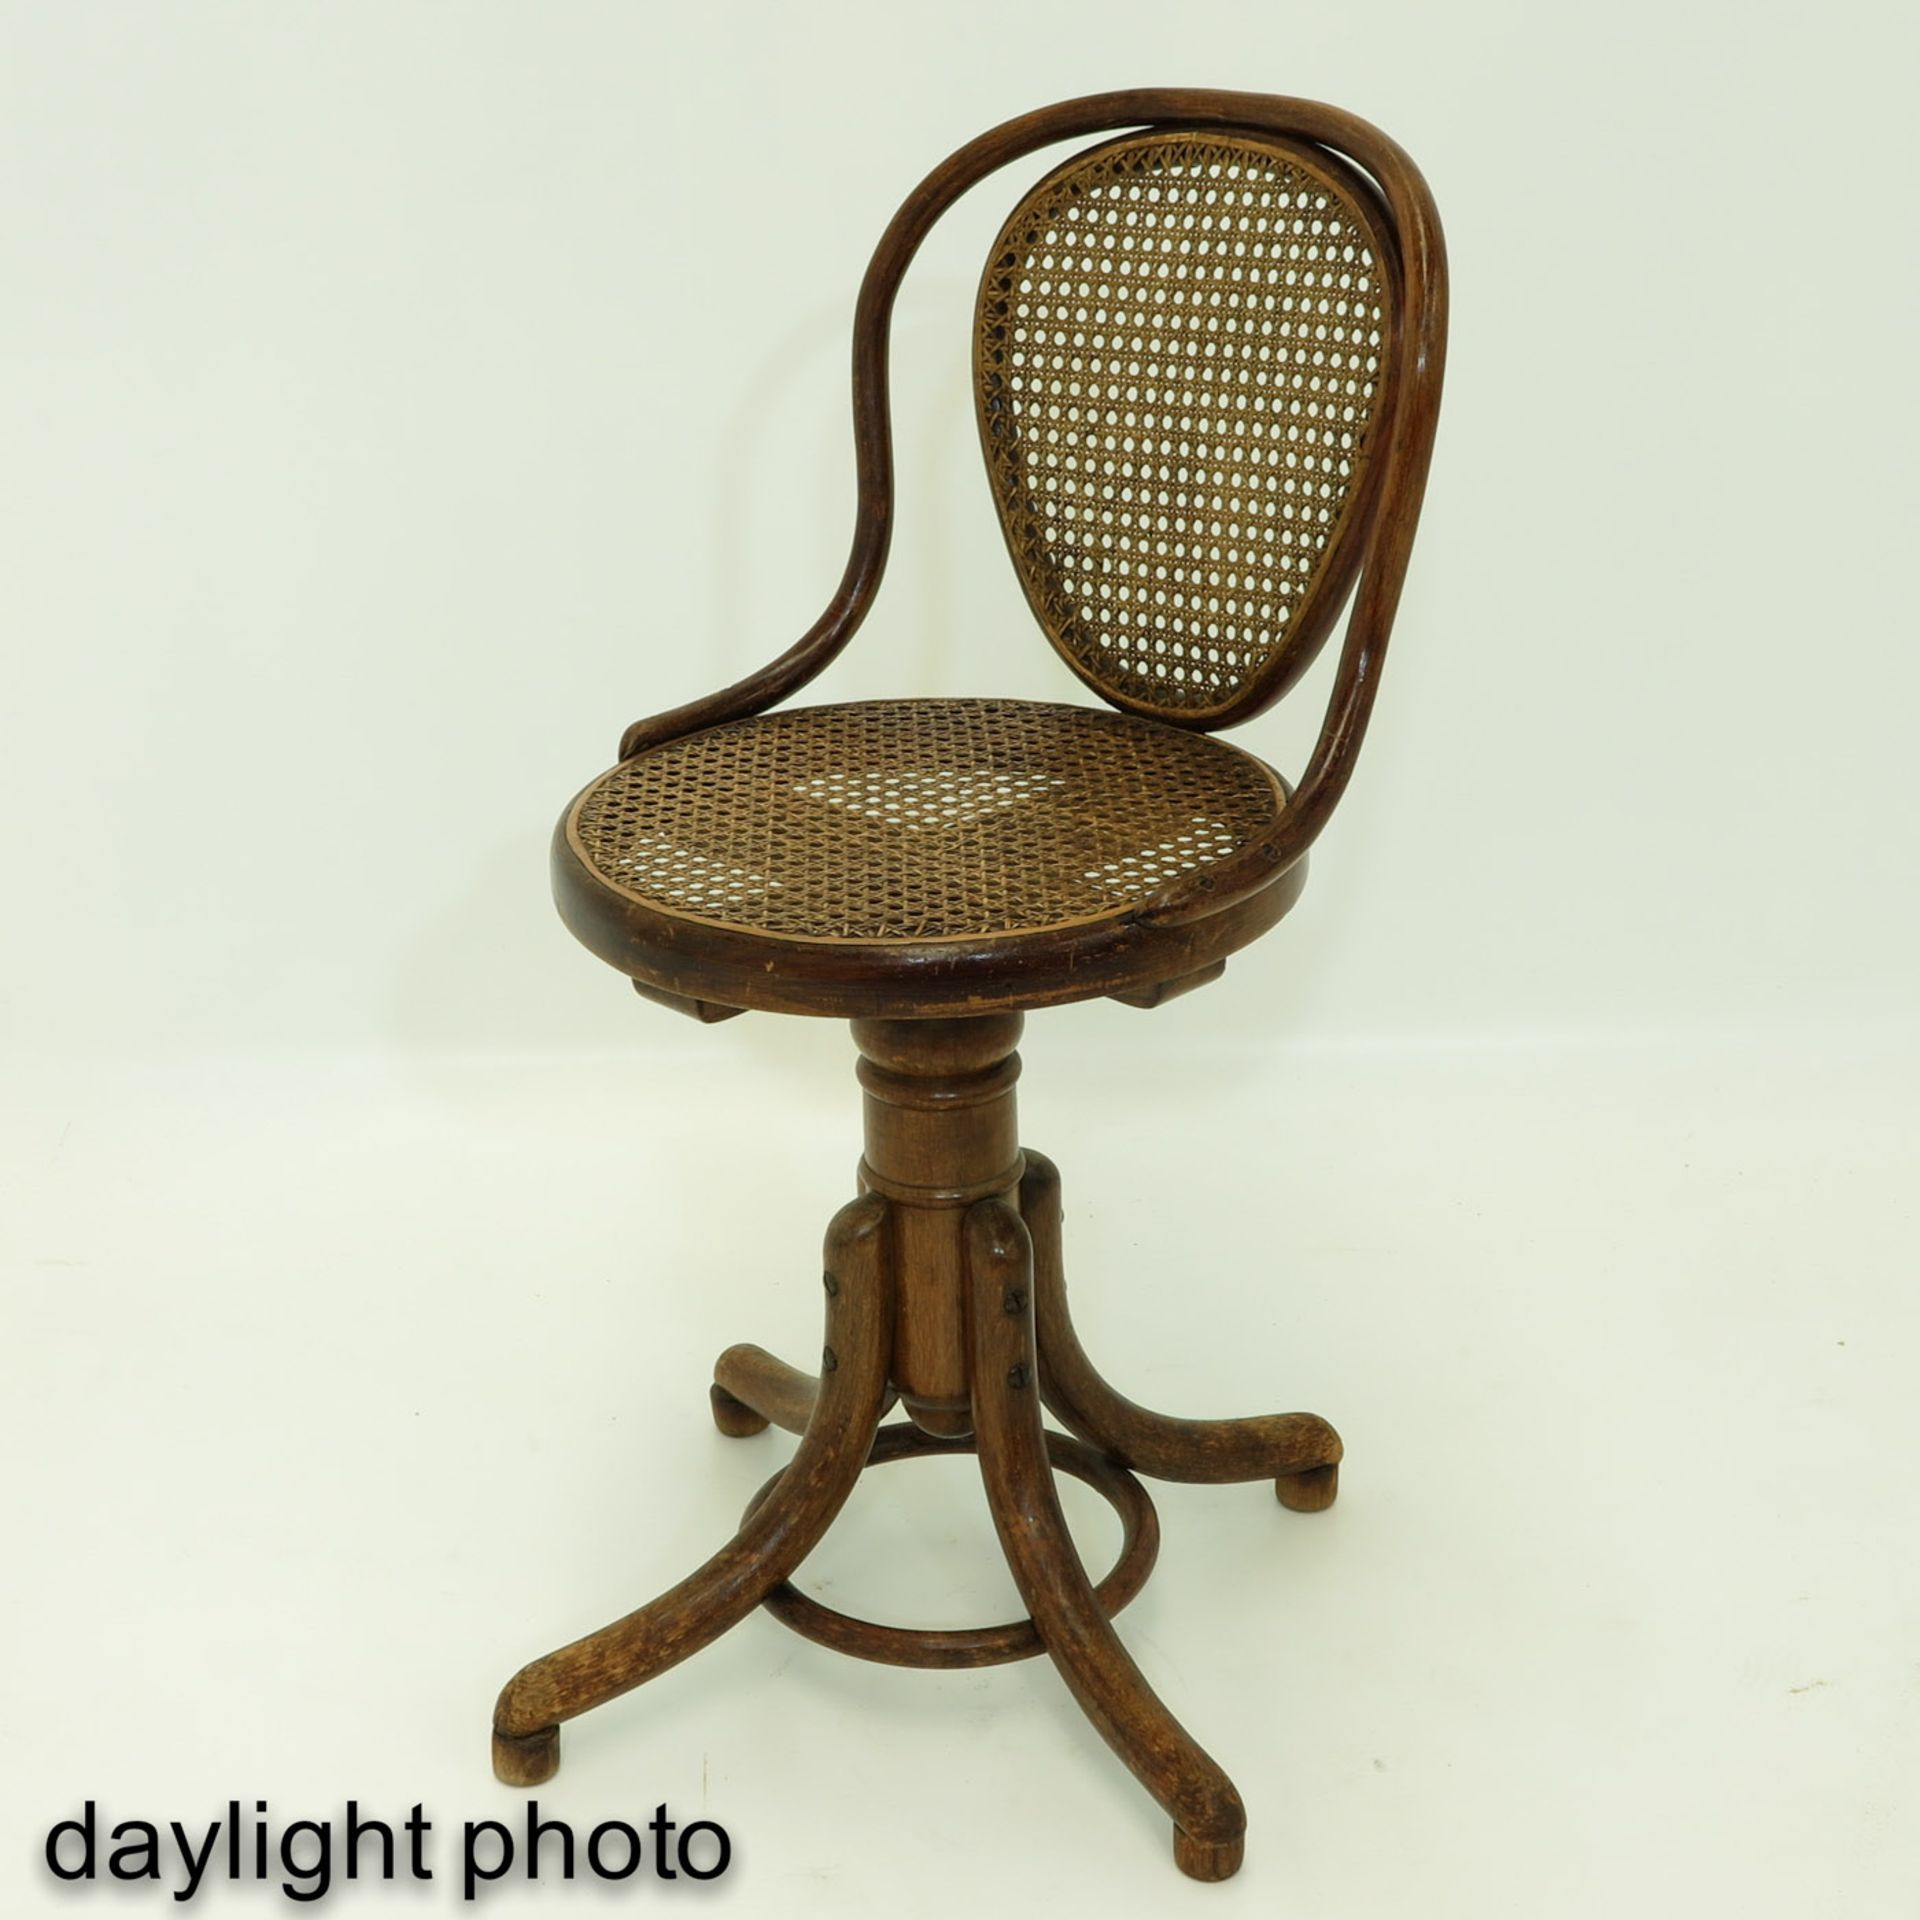 Los 1166 - A Rotating Thonet Office Chair